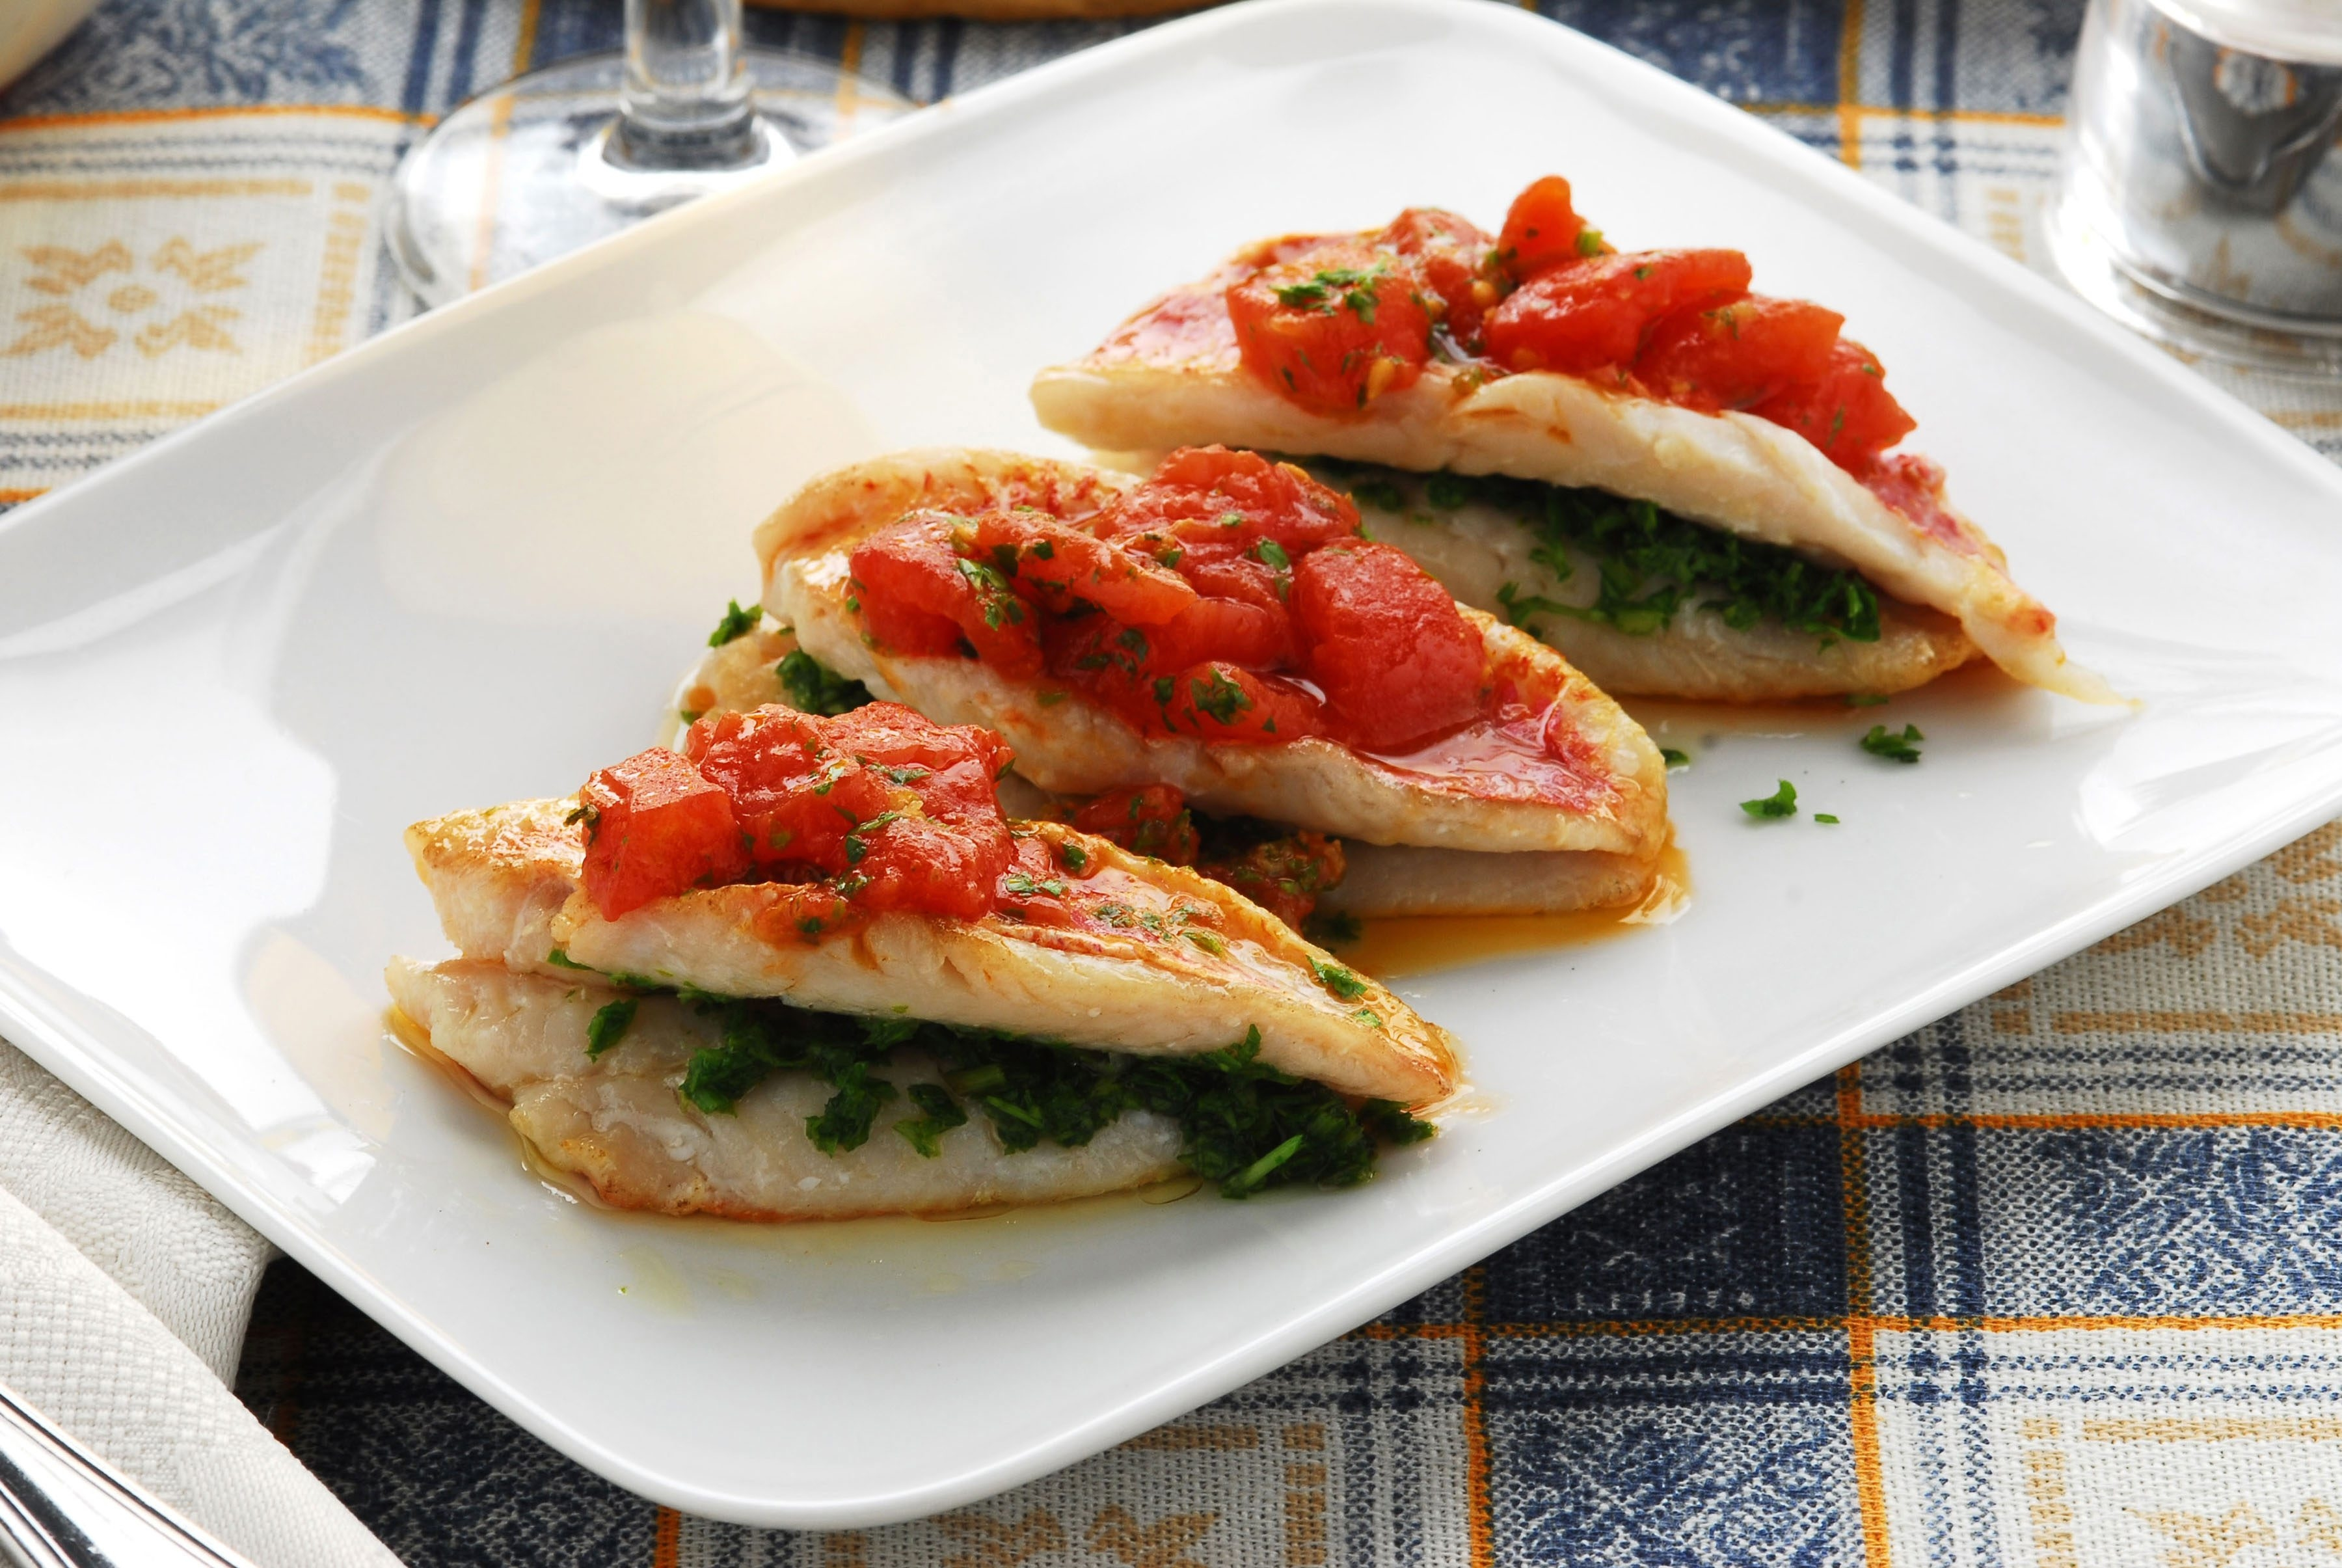 Instead of a sauce, top fish, meat or poultry with sauteed vegetables. It's a good way to increase portion size without adding too many calories.